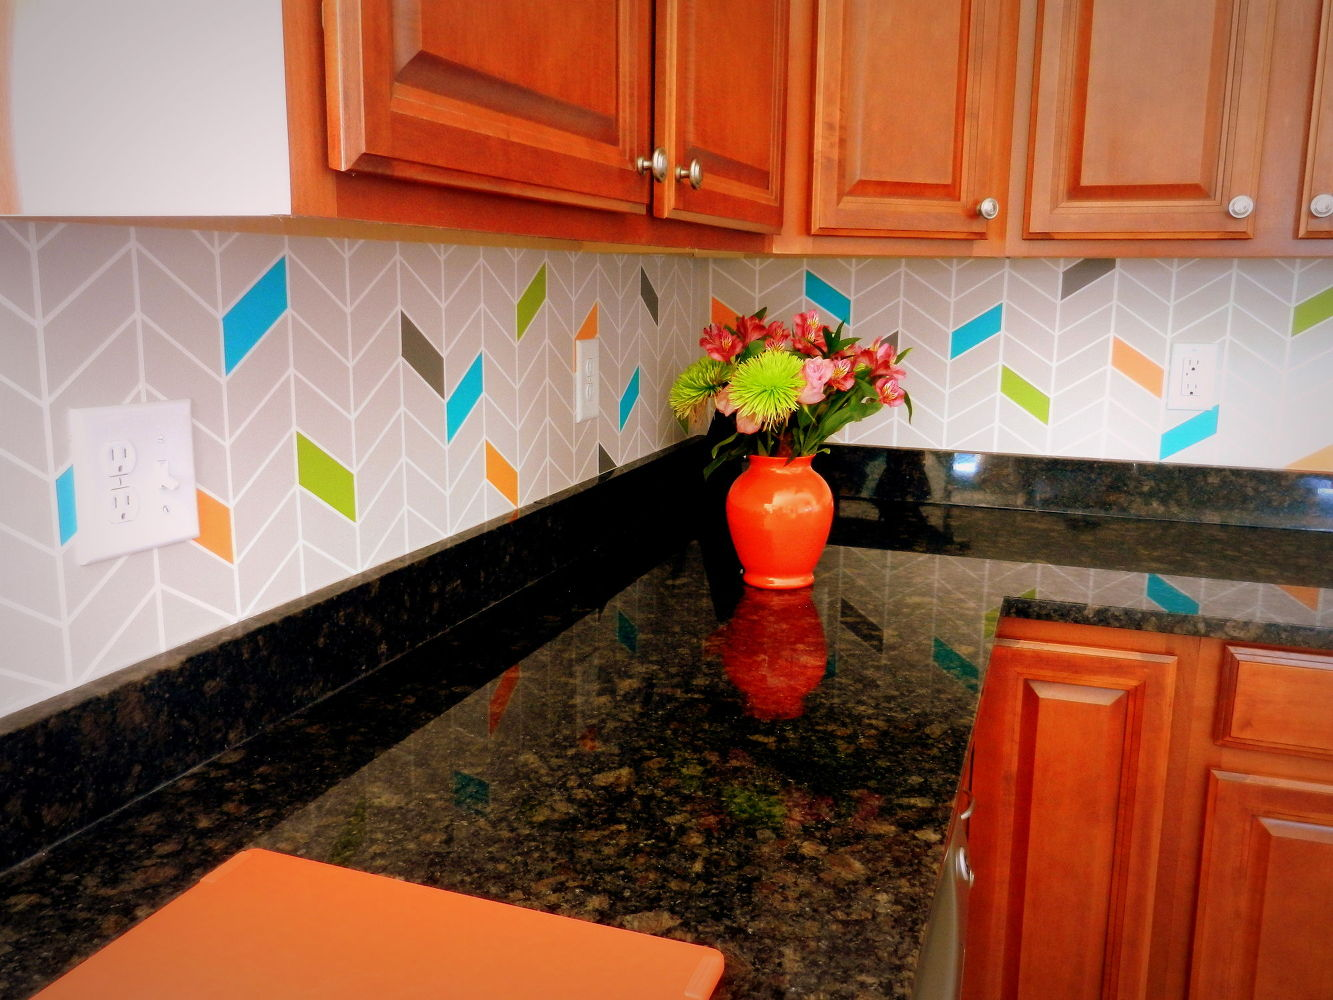 13 Incredible Kitchen Backsplash Ideas That Aren't Tile